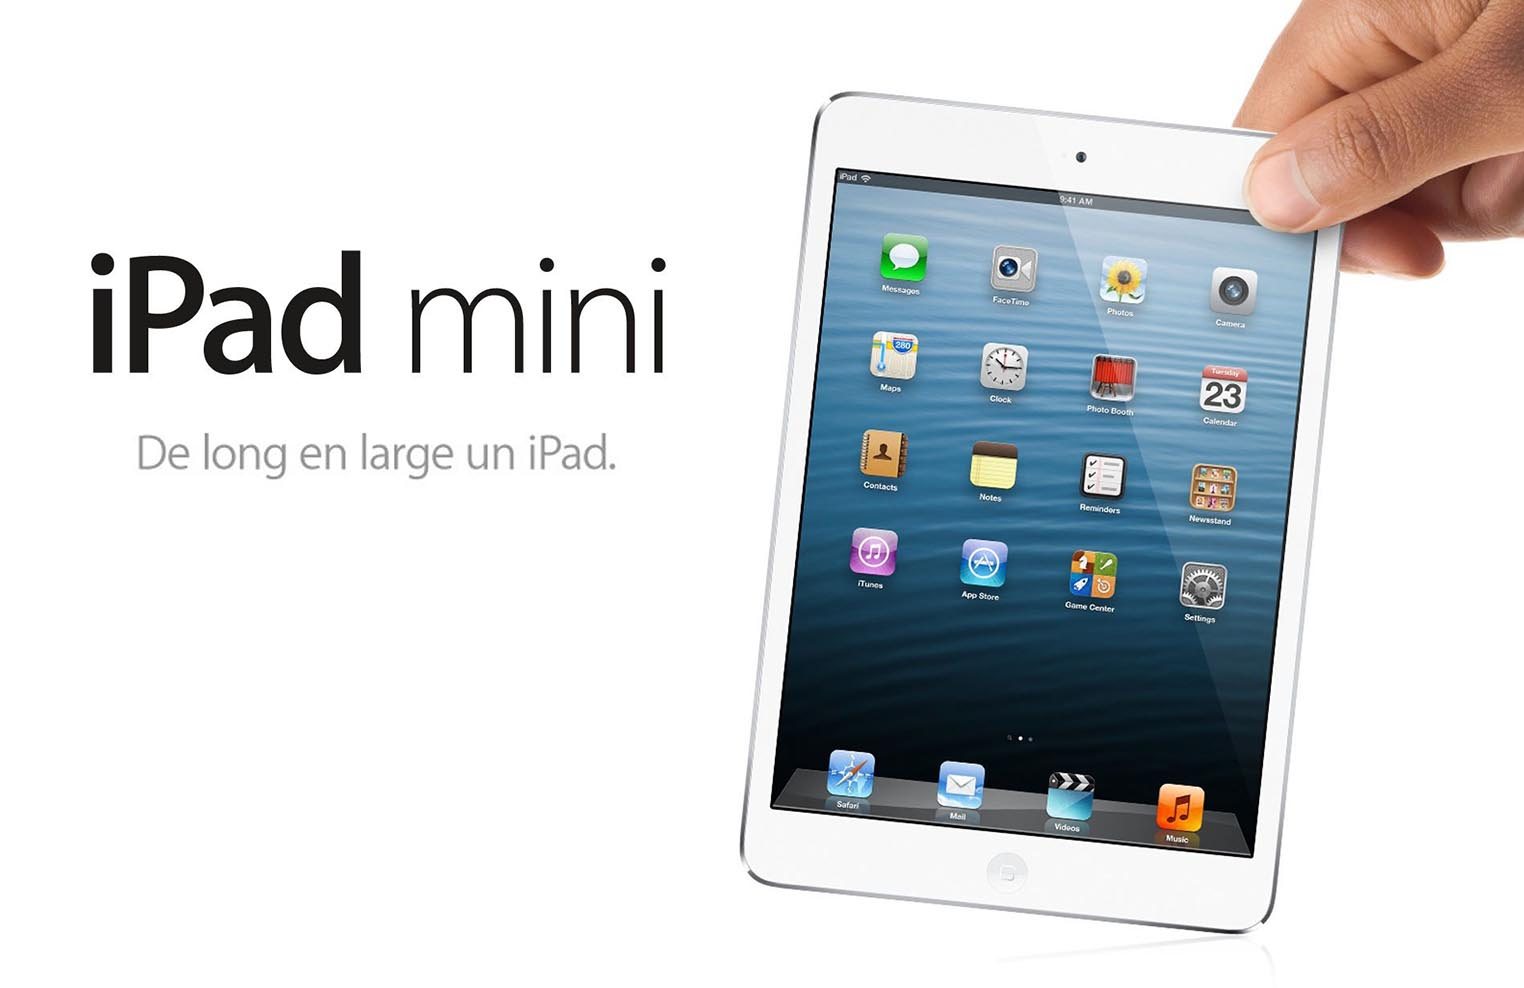 iPad mini de long en large un iPad